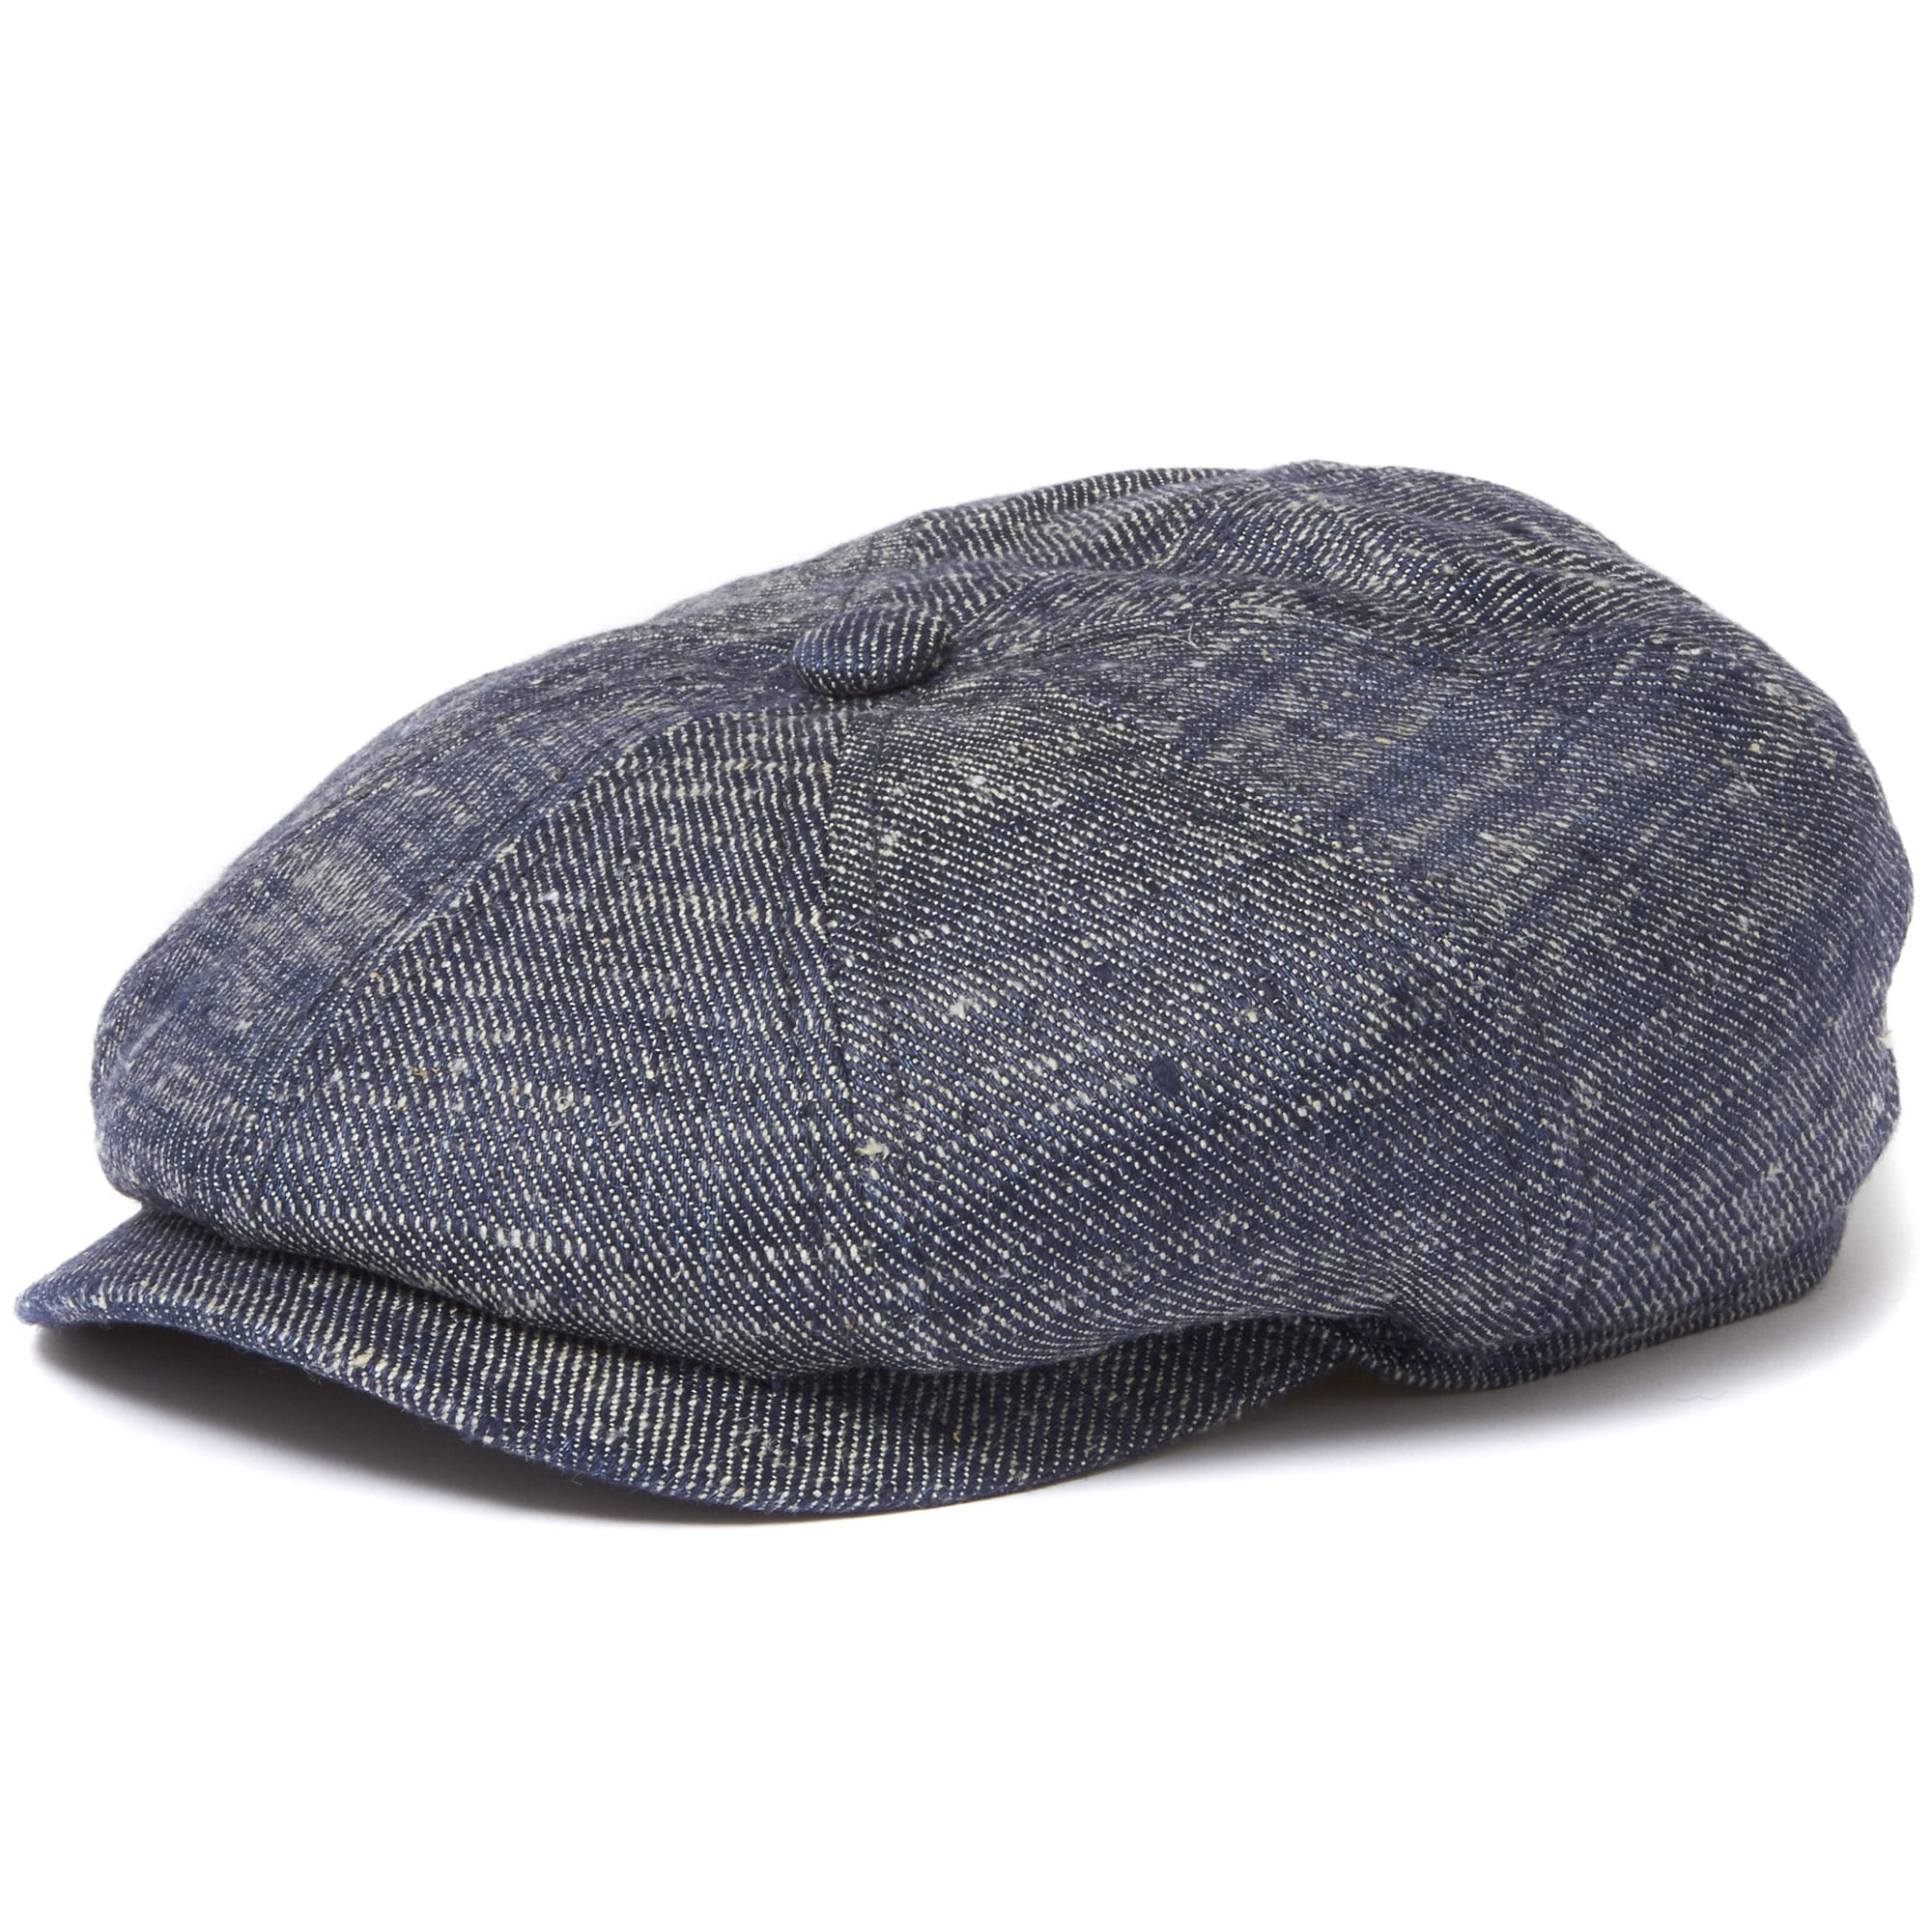 8af577eb6423a Stetson Navy Linen and Silk Denim Newsboy Cap